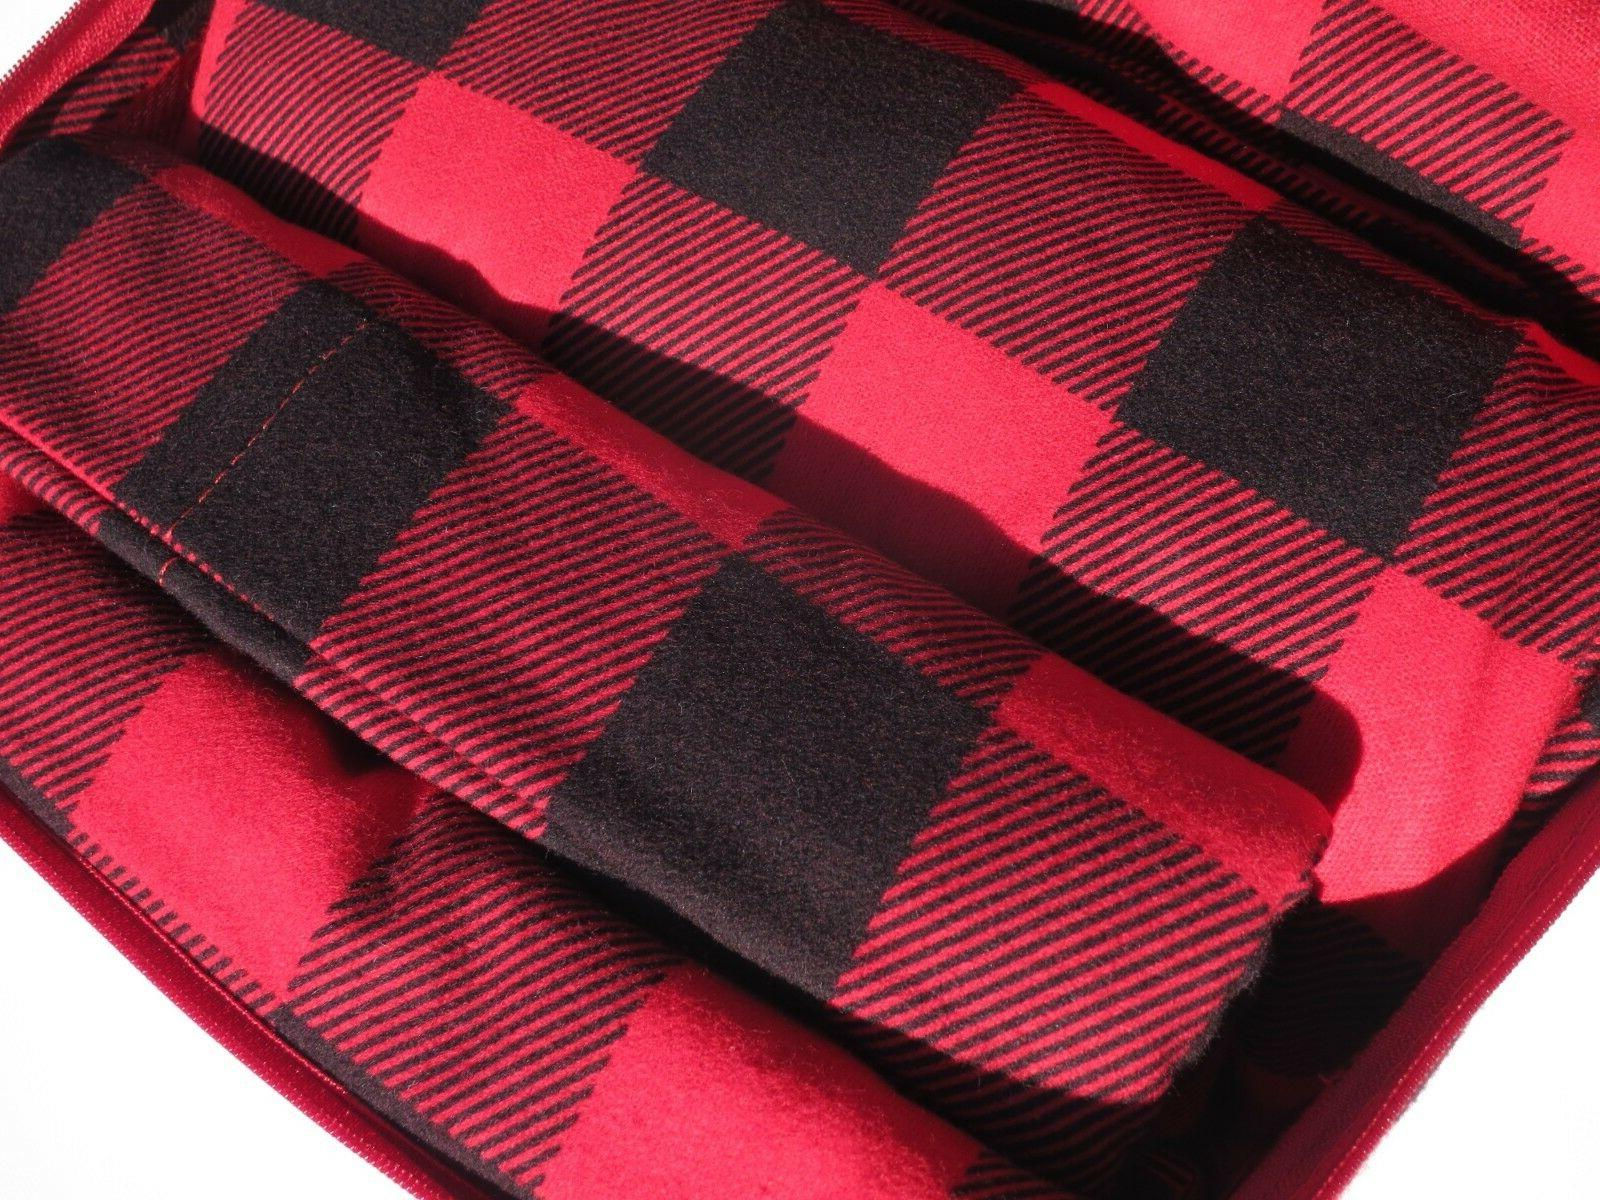 Nice! Queen Bed in Plaid/Buffalo